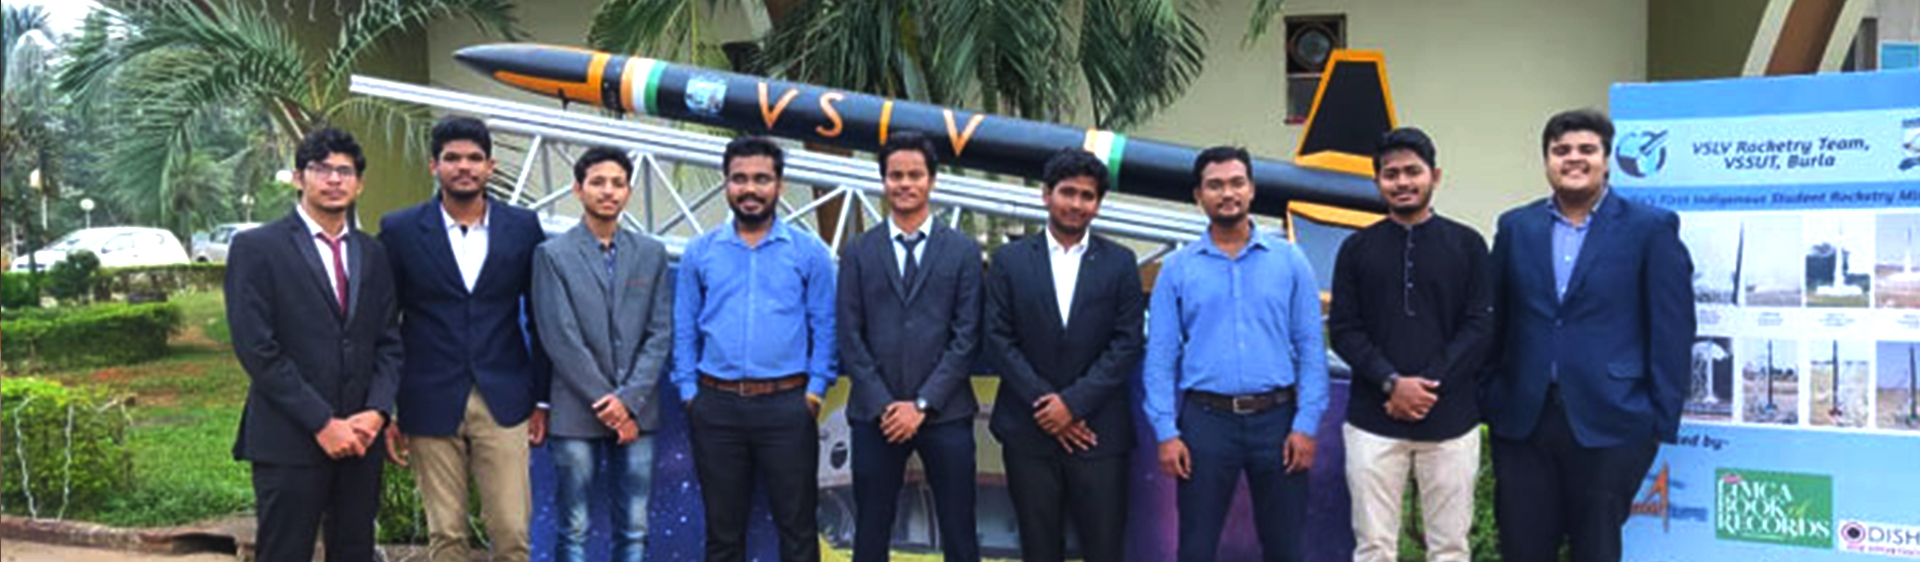 Team VSLV invited by TATA Steel to represent in Young Astronomer Talent Search 2019